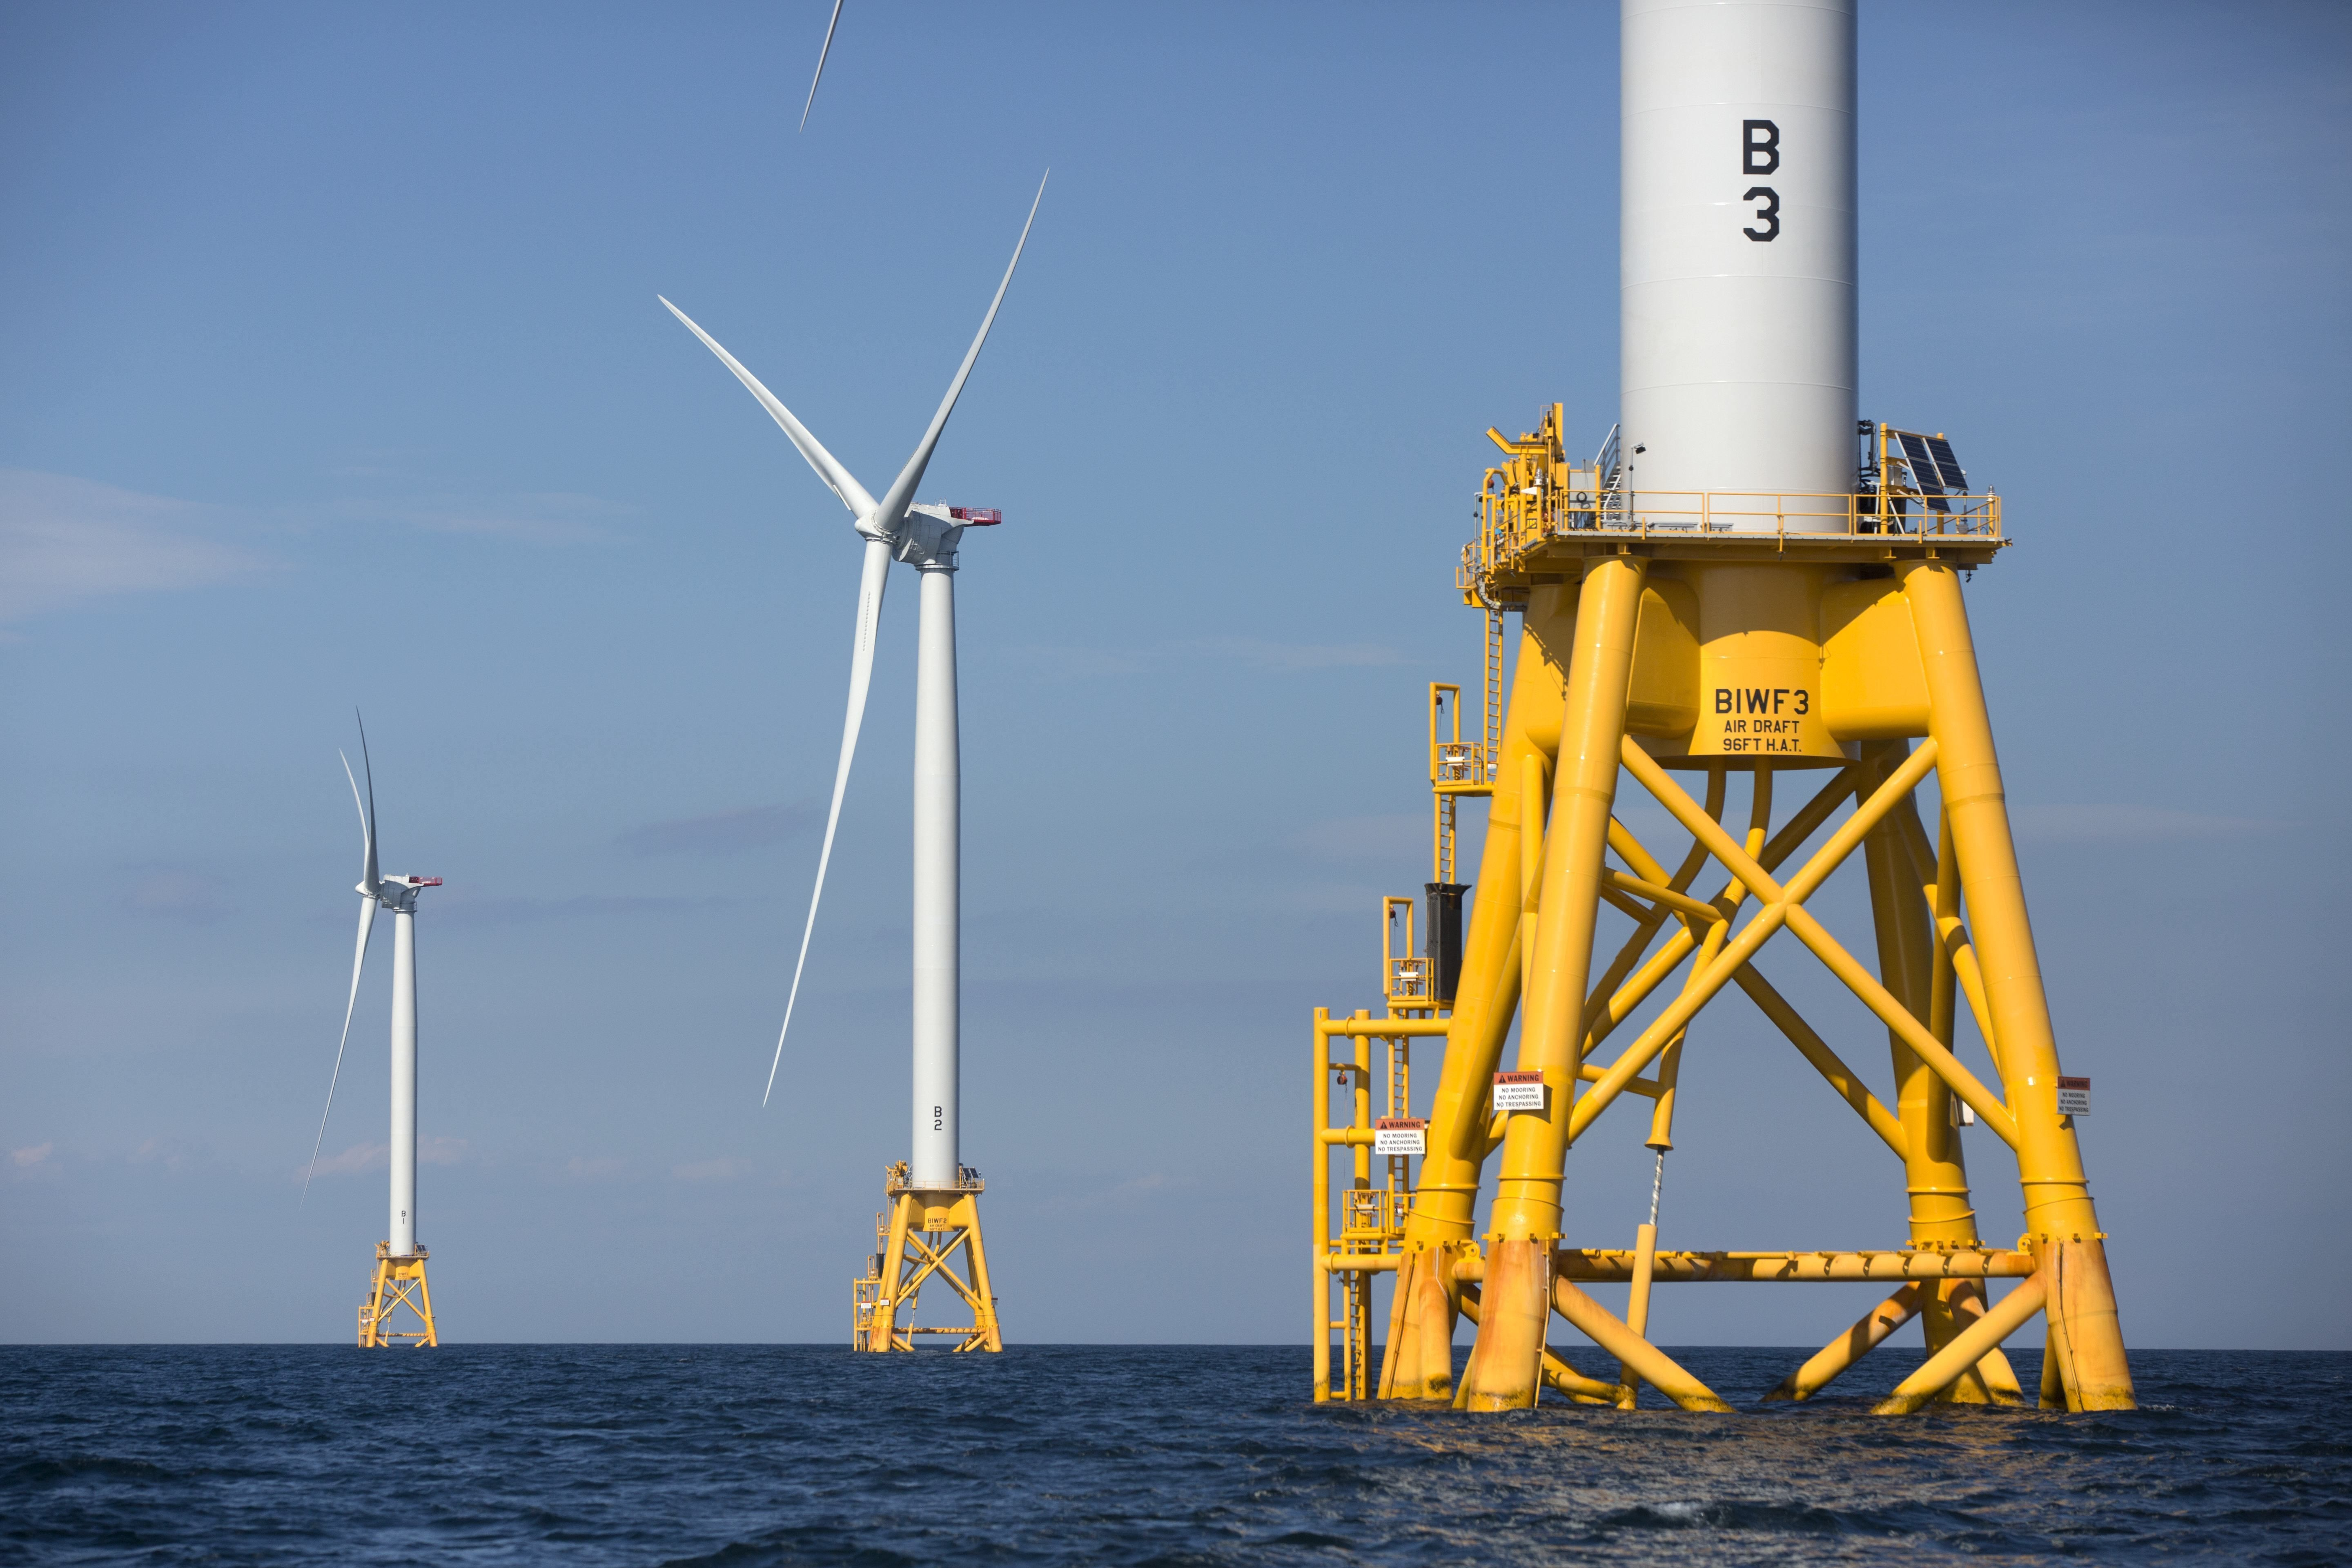 The nation's first offshore wind farm is ready to go, despite critics' blowback